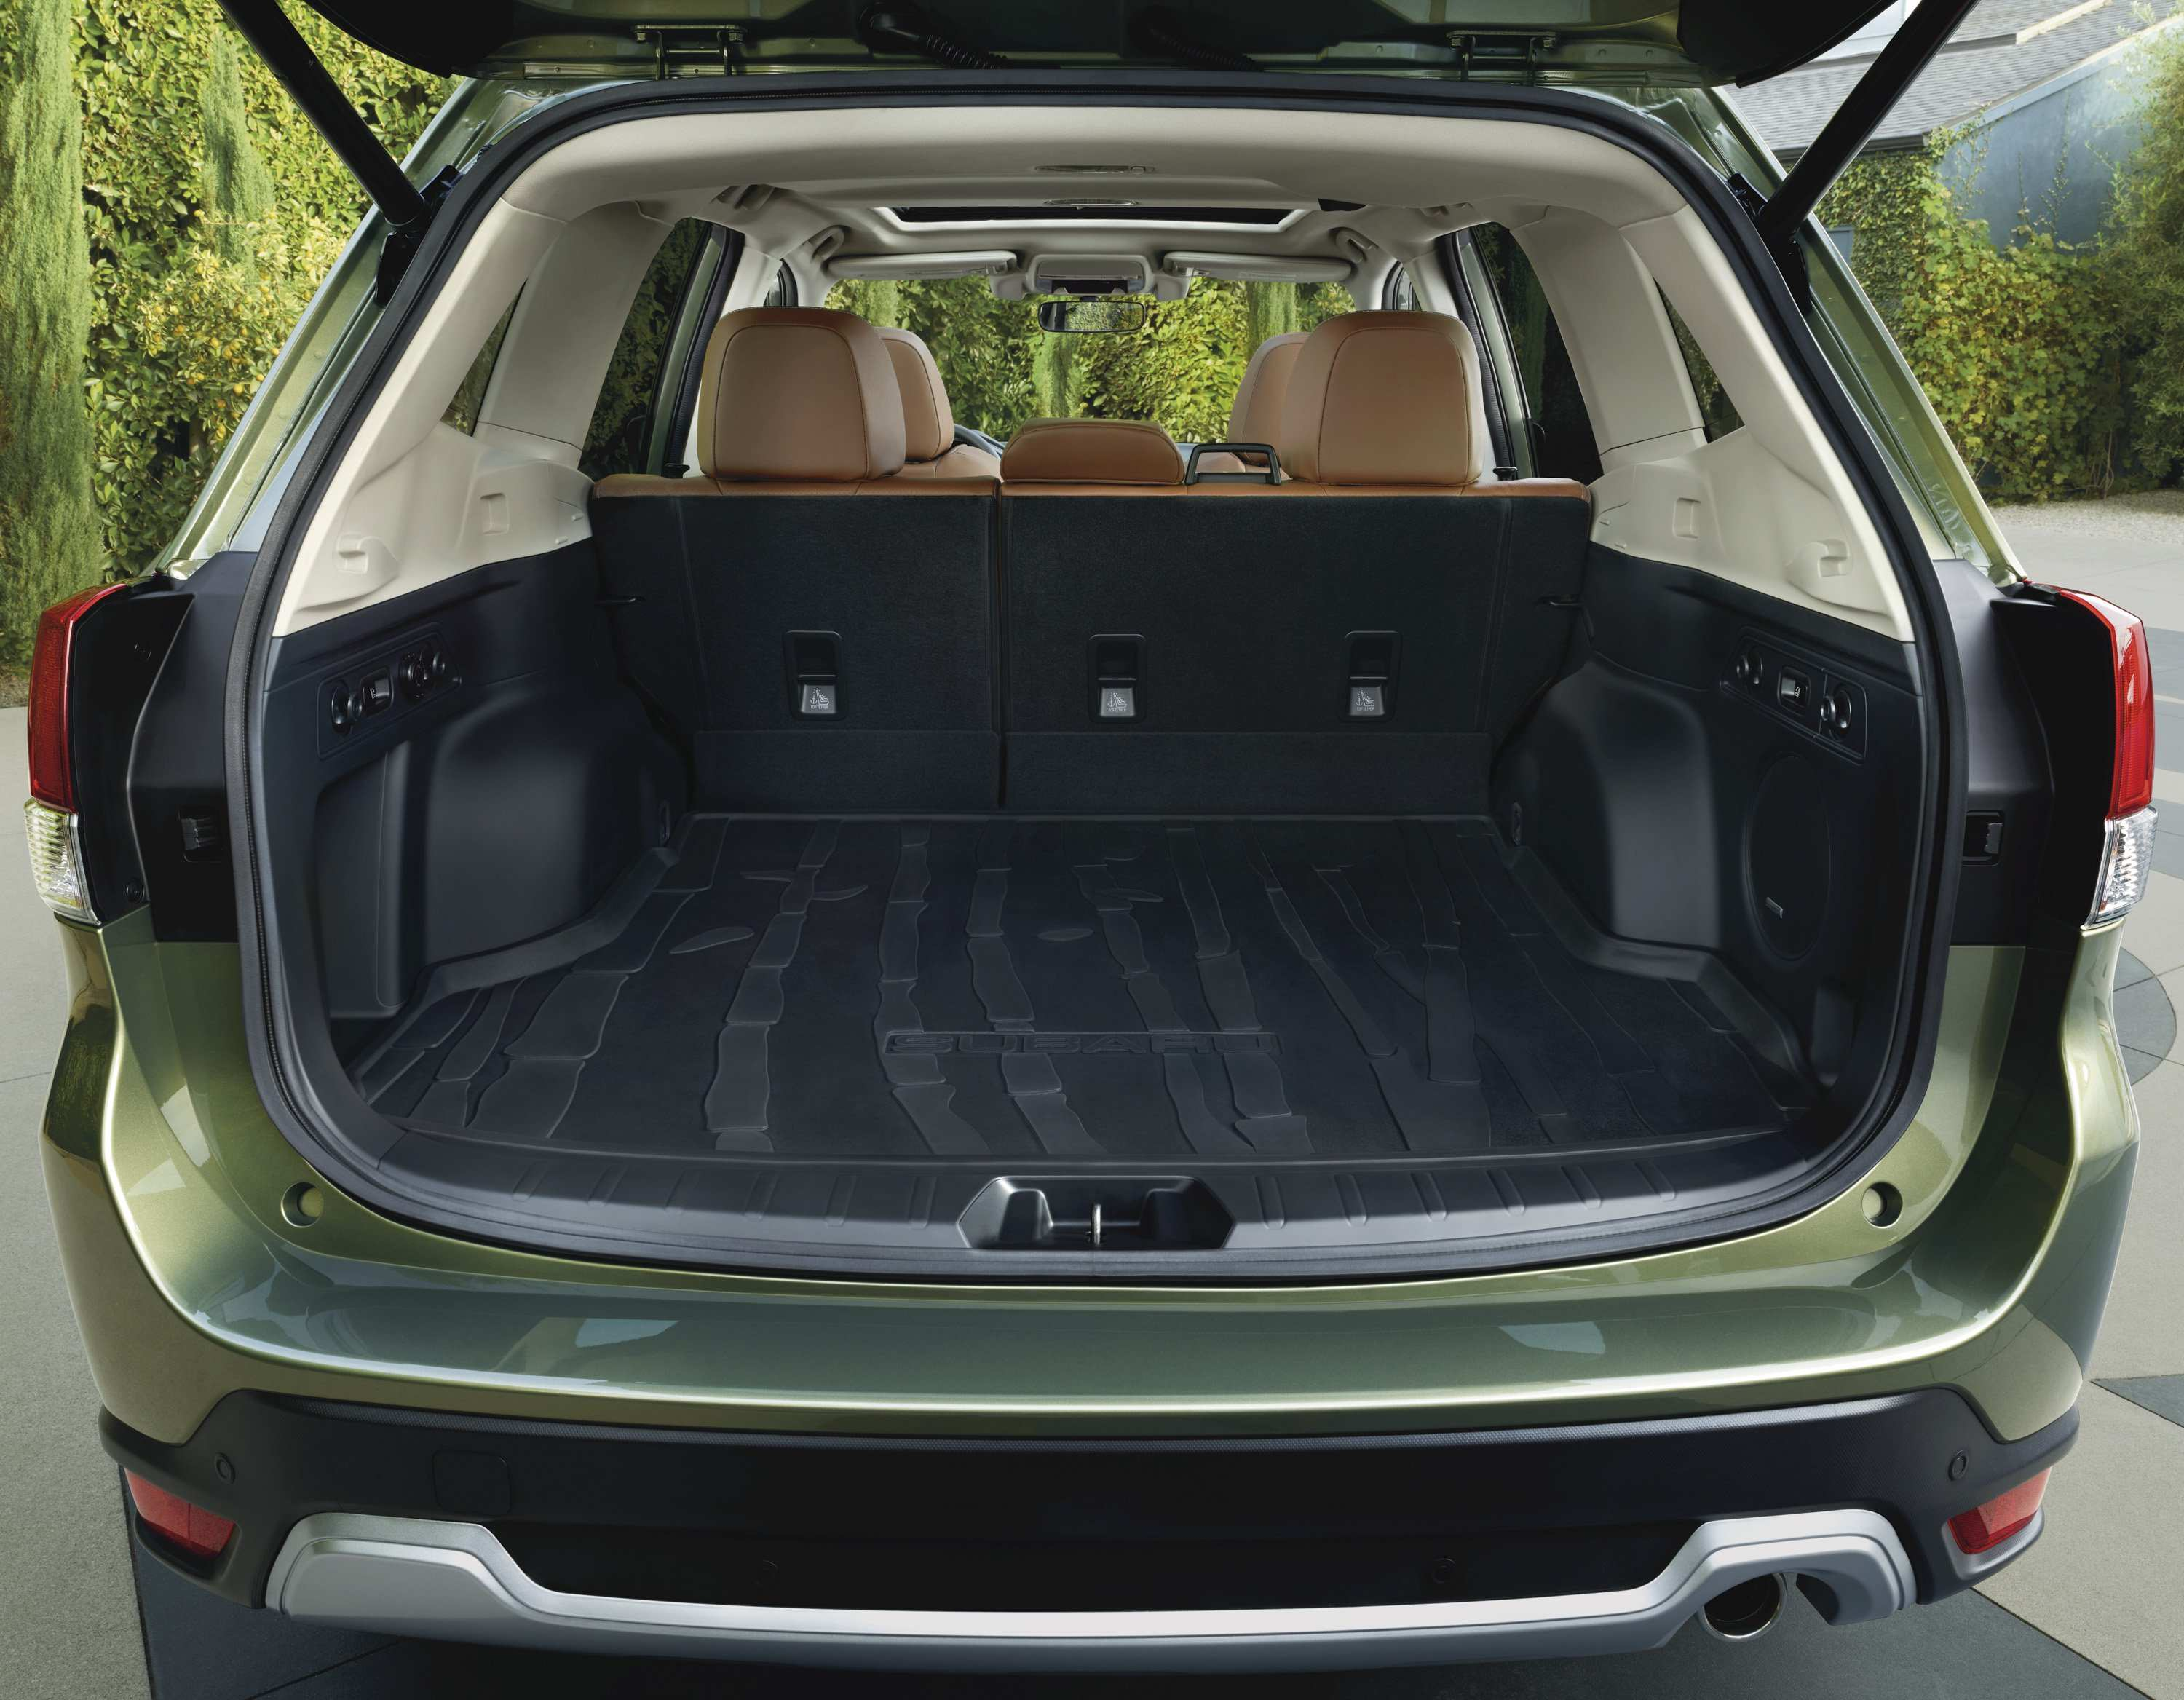 77 Best Subaru Forester 2019 Ground Clearance Interior